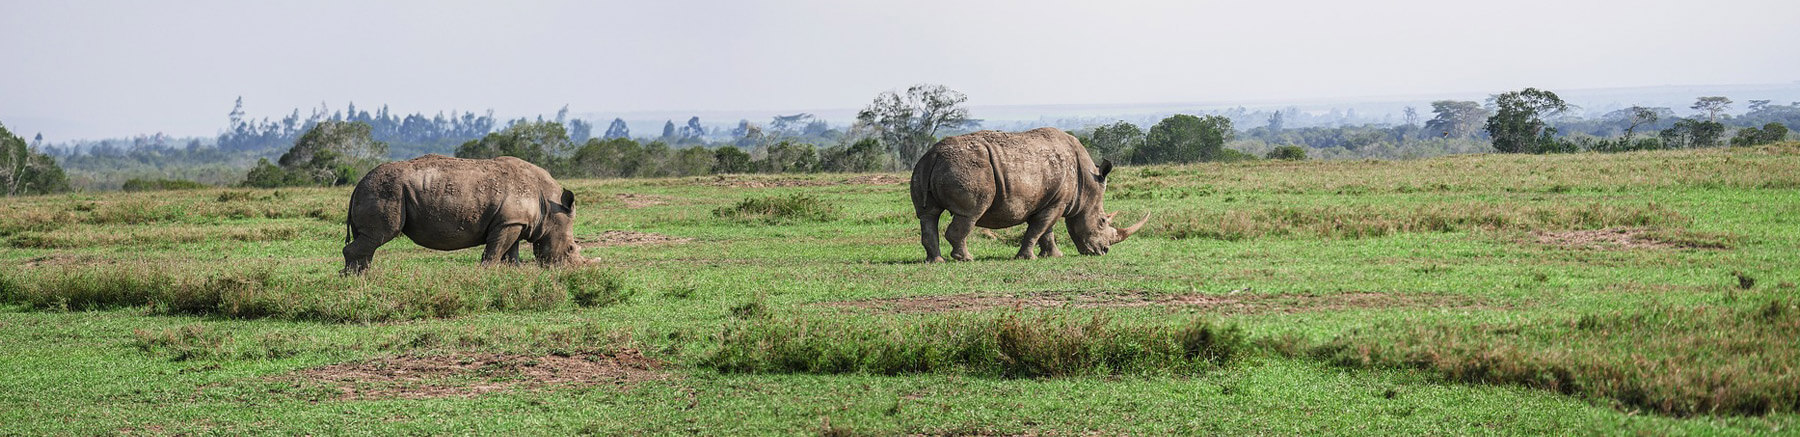 Two rhinoceros eating grass in Kenya